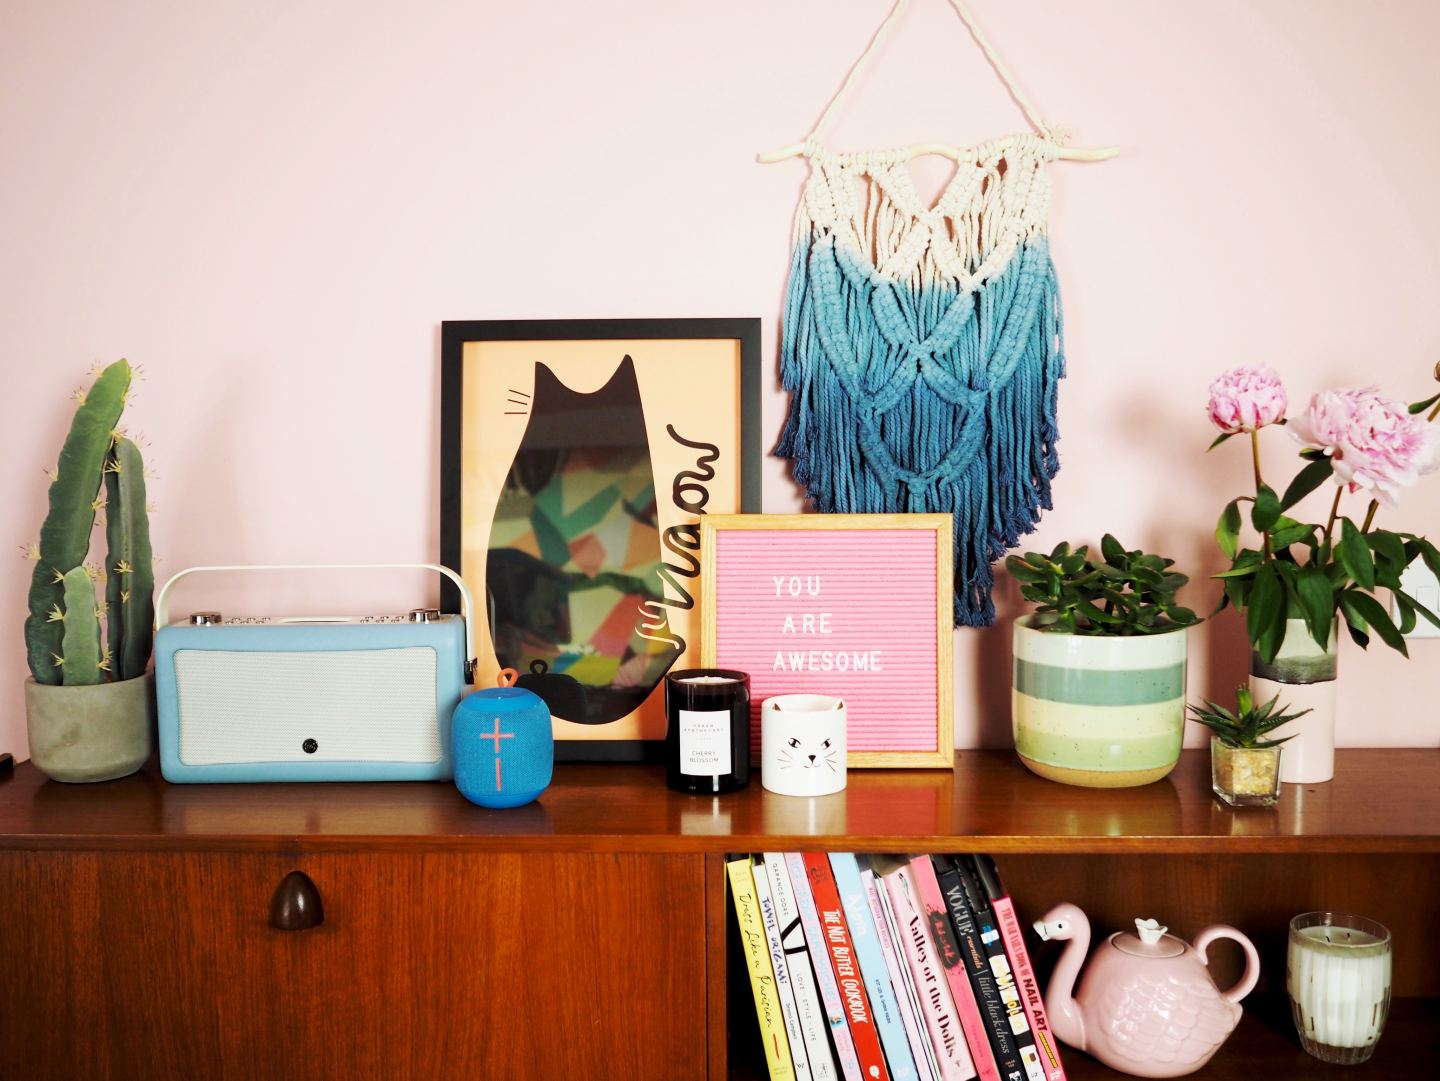 Home: How I Style My Shelves